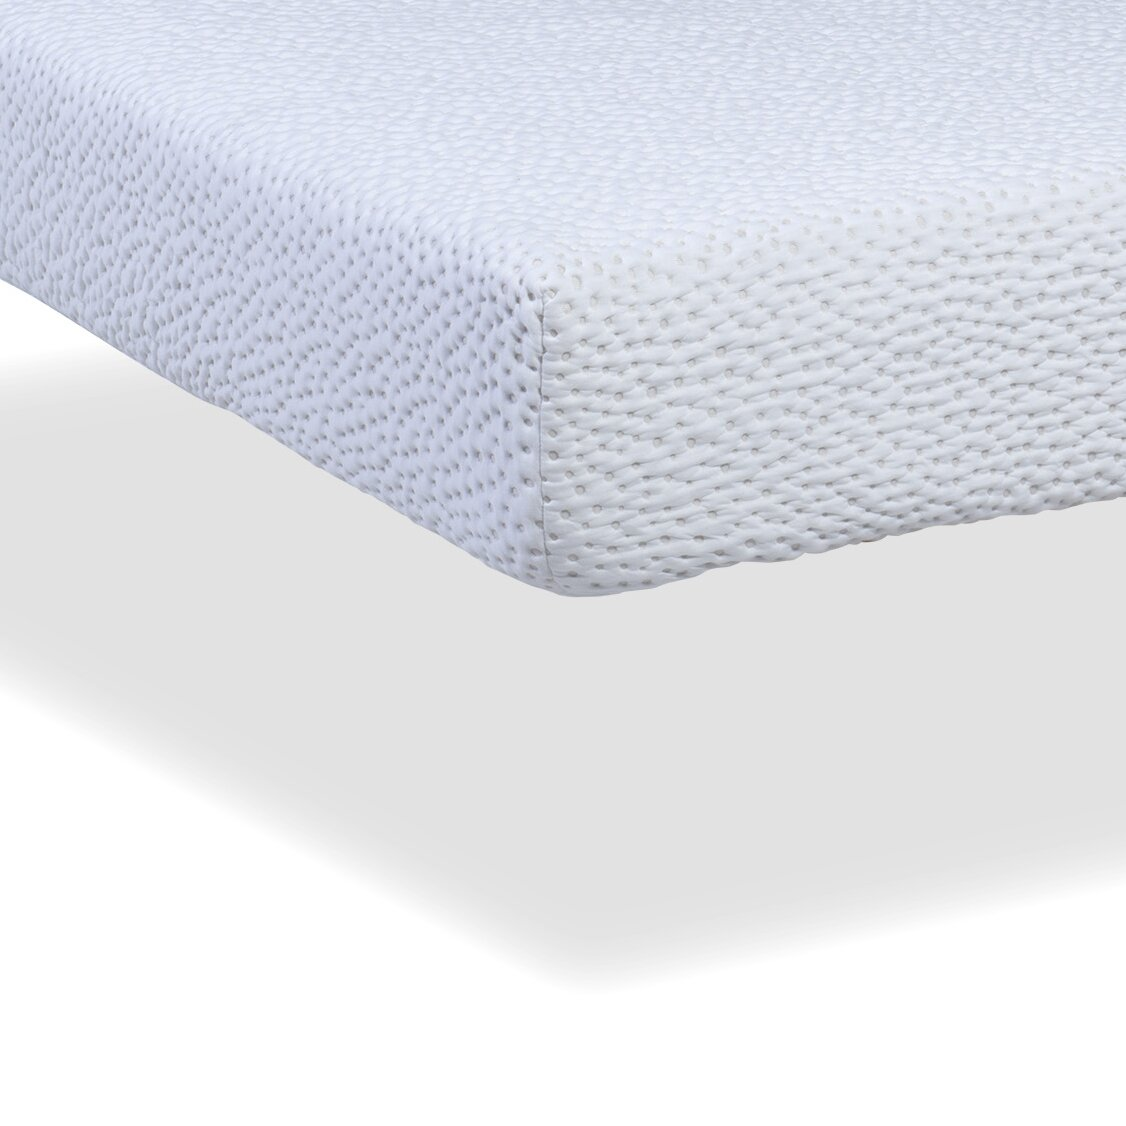 "Wolf Mattress Prato 11"" Plush Hybrid Mattress & Reviews"